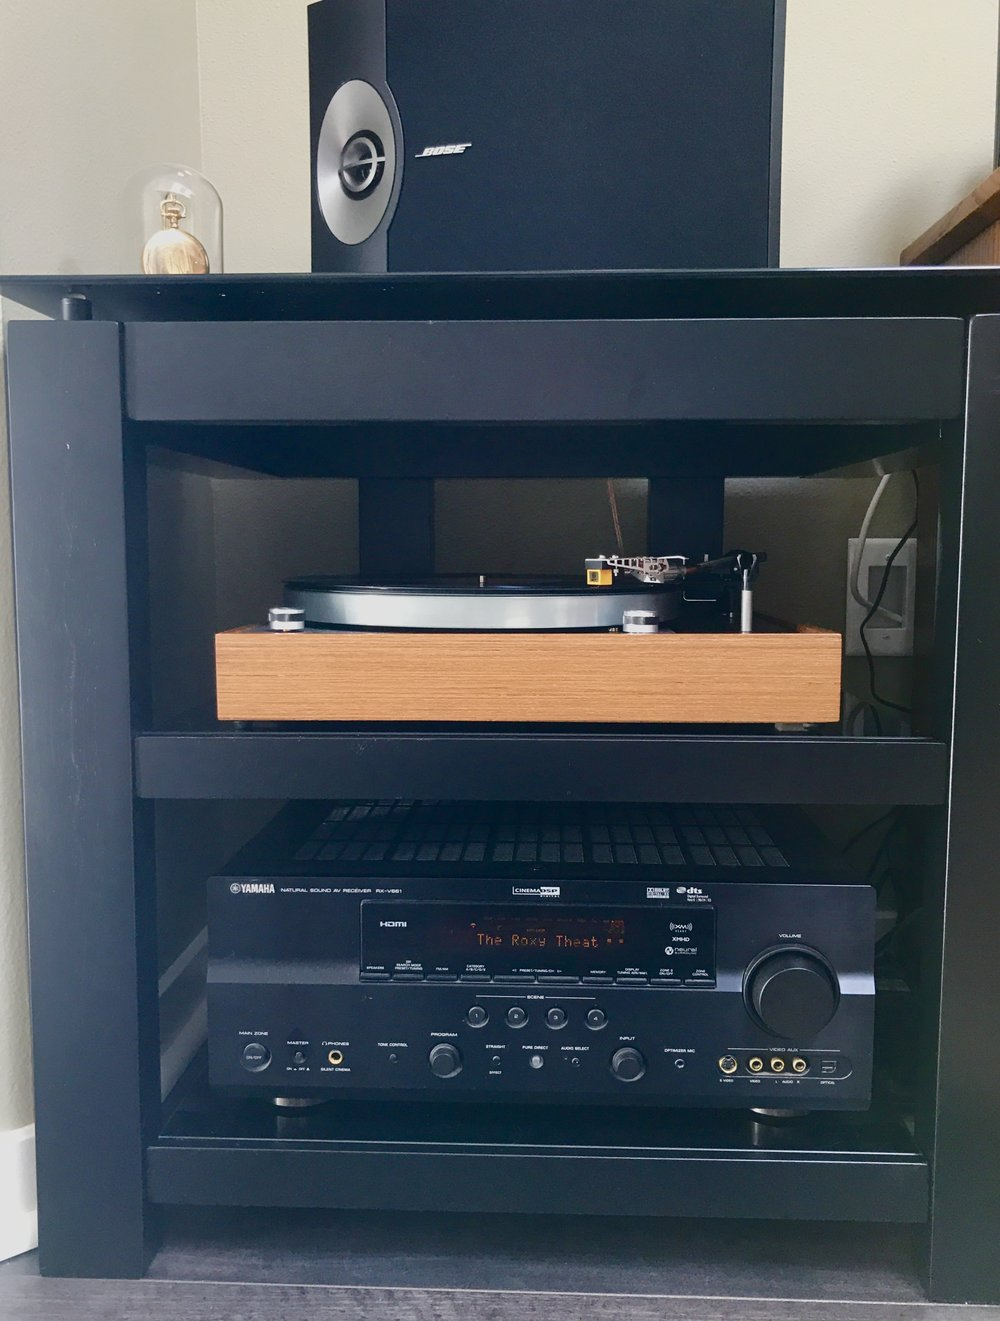 Paul W System: Yamaha, Bose, and a really really nice Thorens/Nagoaka MP110.